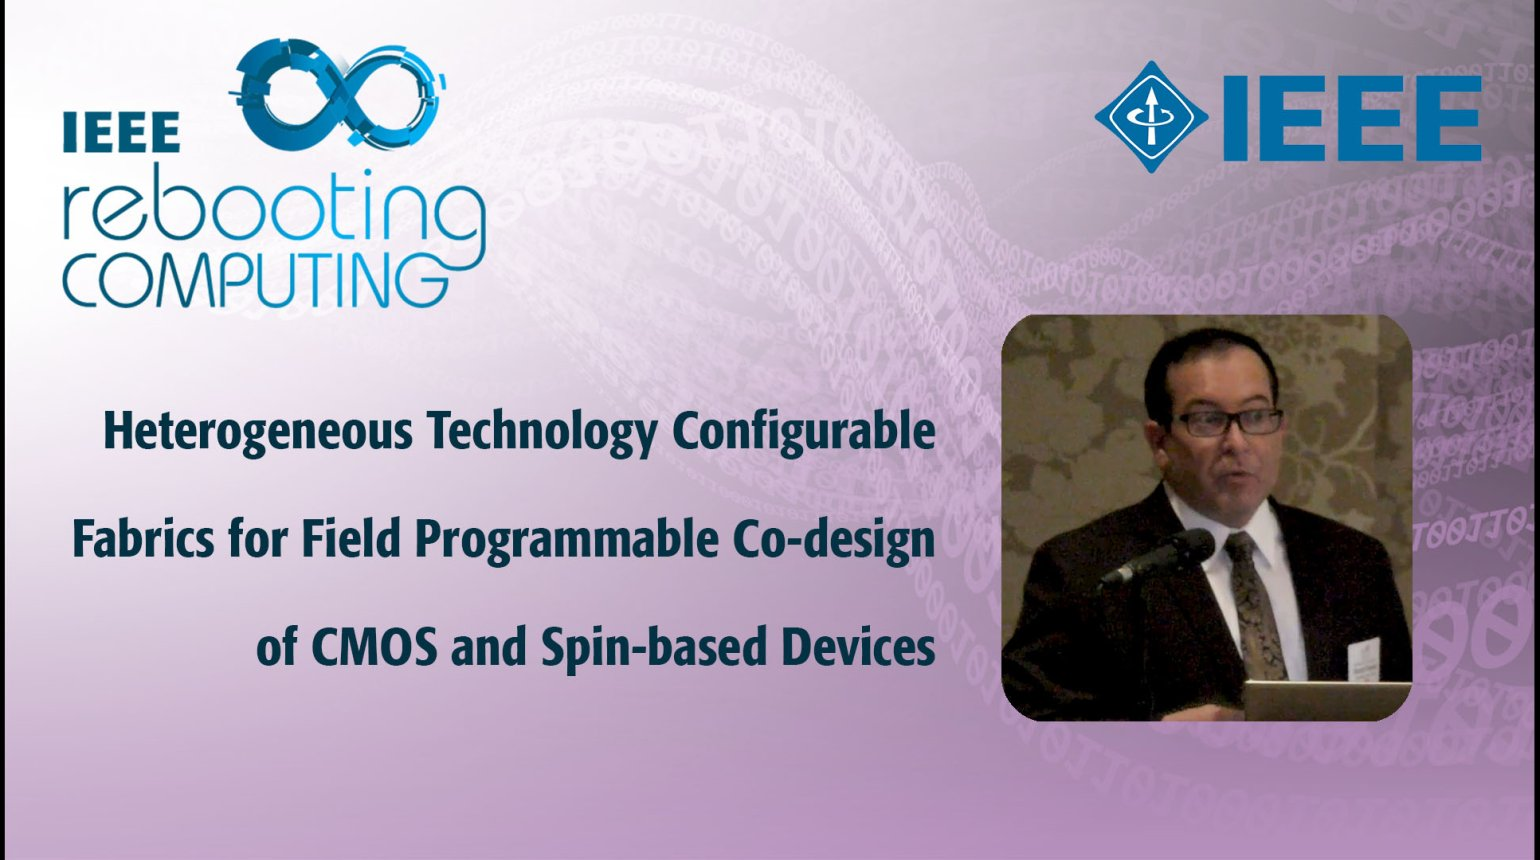 Heterogeneous Technology Configurable Fabrics for Field Programmable Co-design of CMOS and Spin-based Devices: IEEE Rebooting Computing 2017